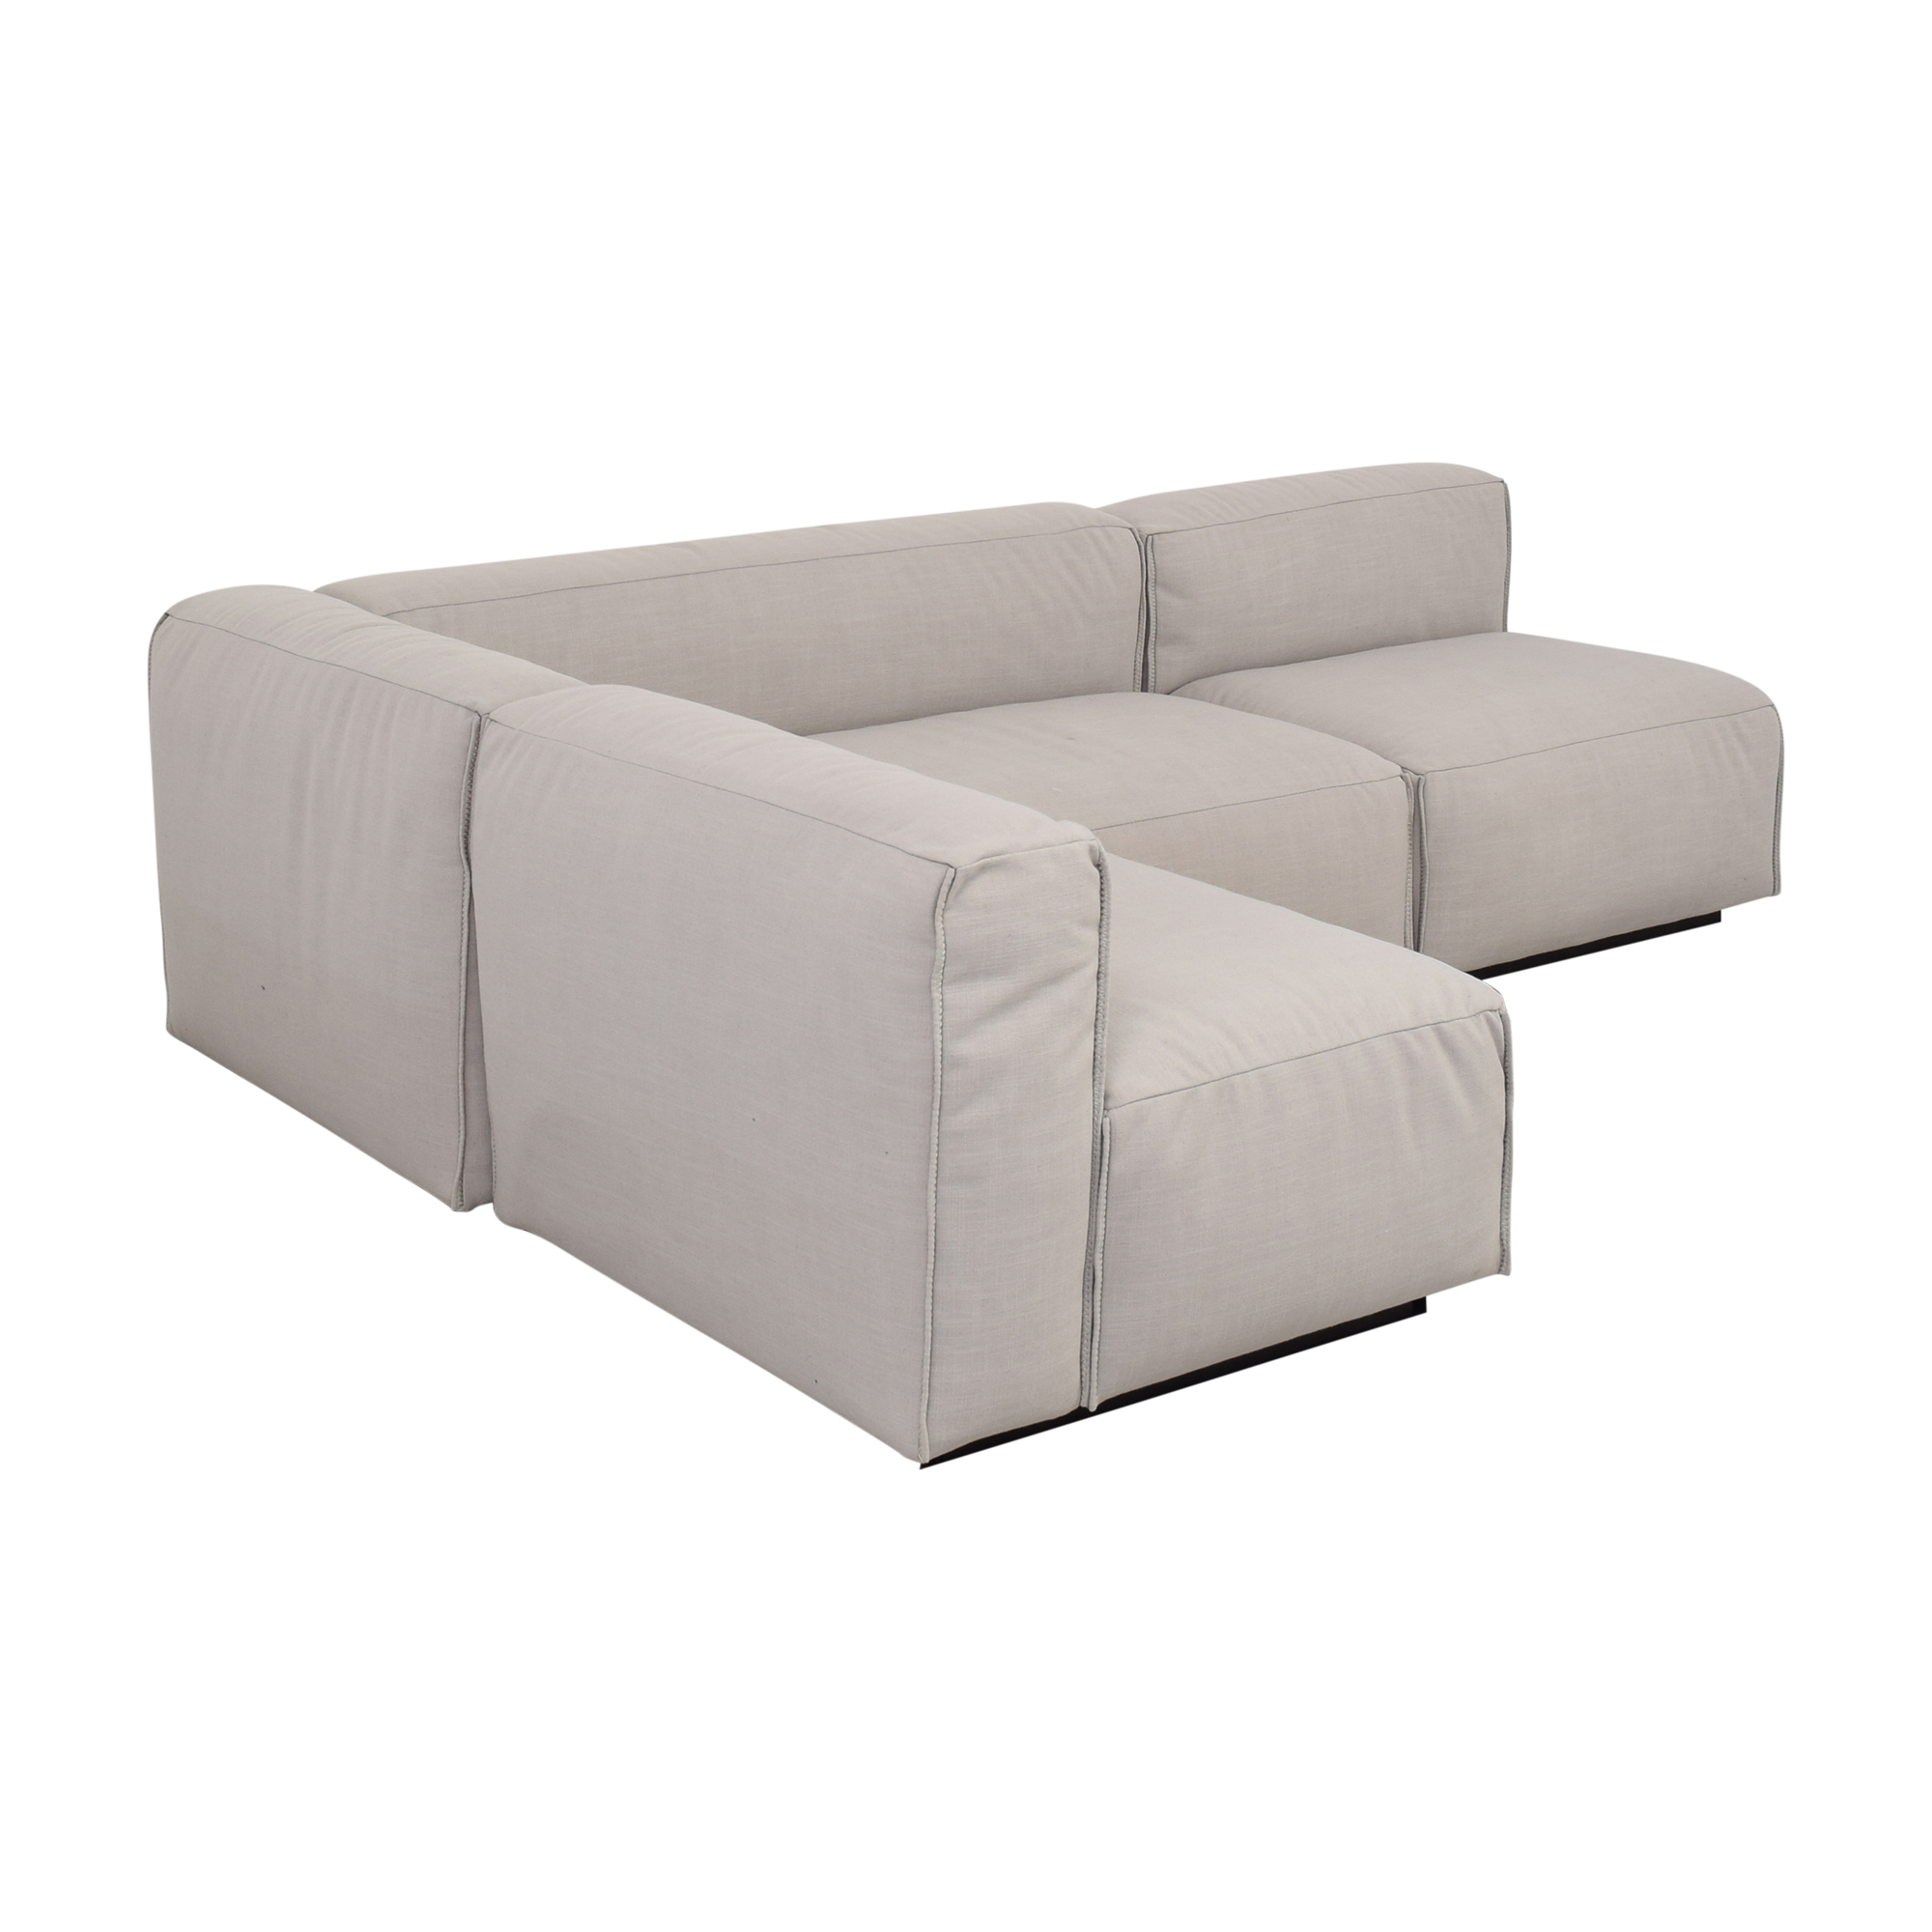 Blu Dot Cleon Medium Sectional Sofa / Sofas